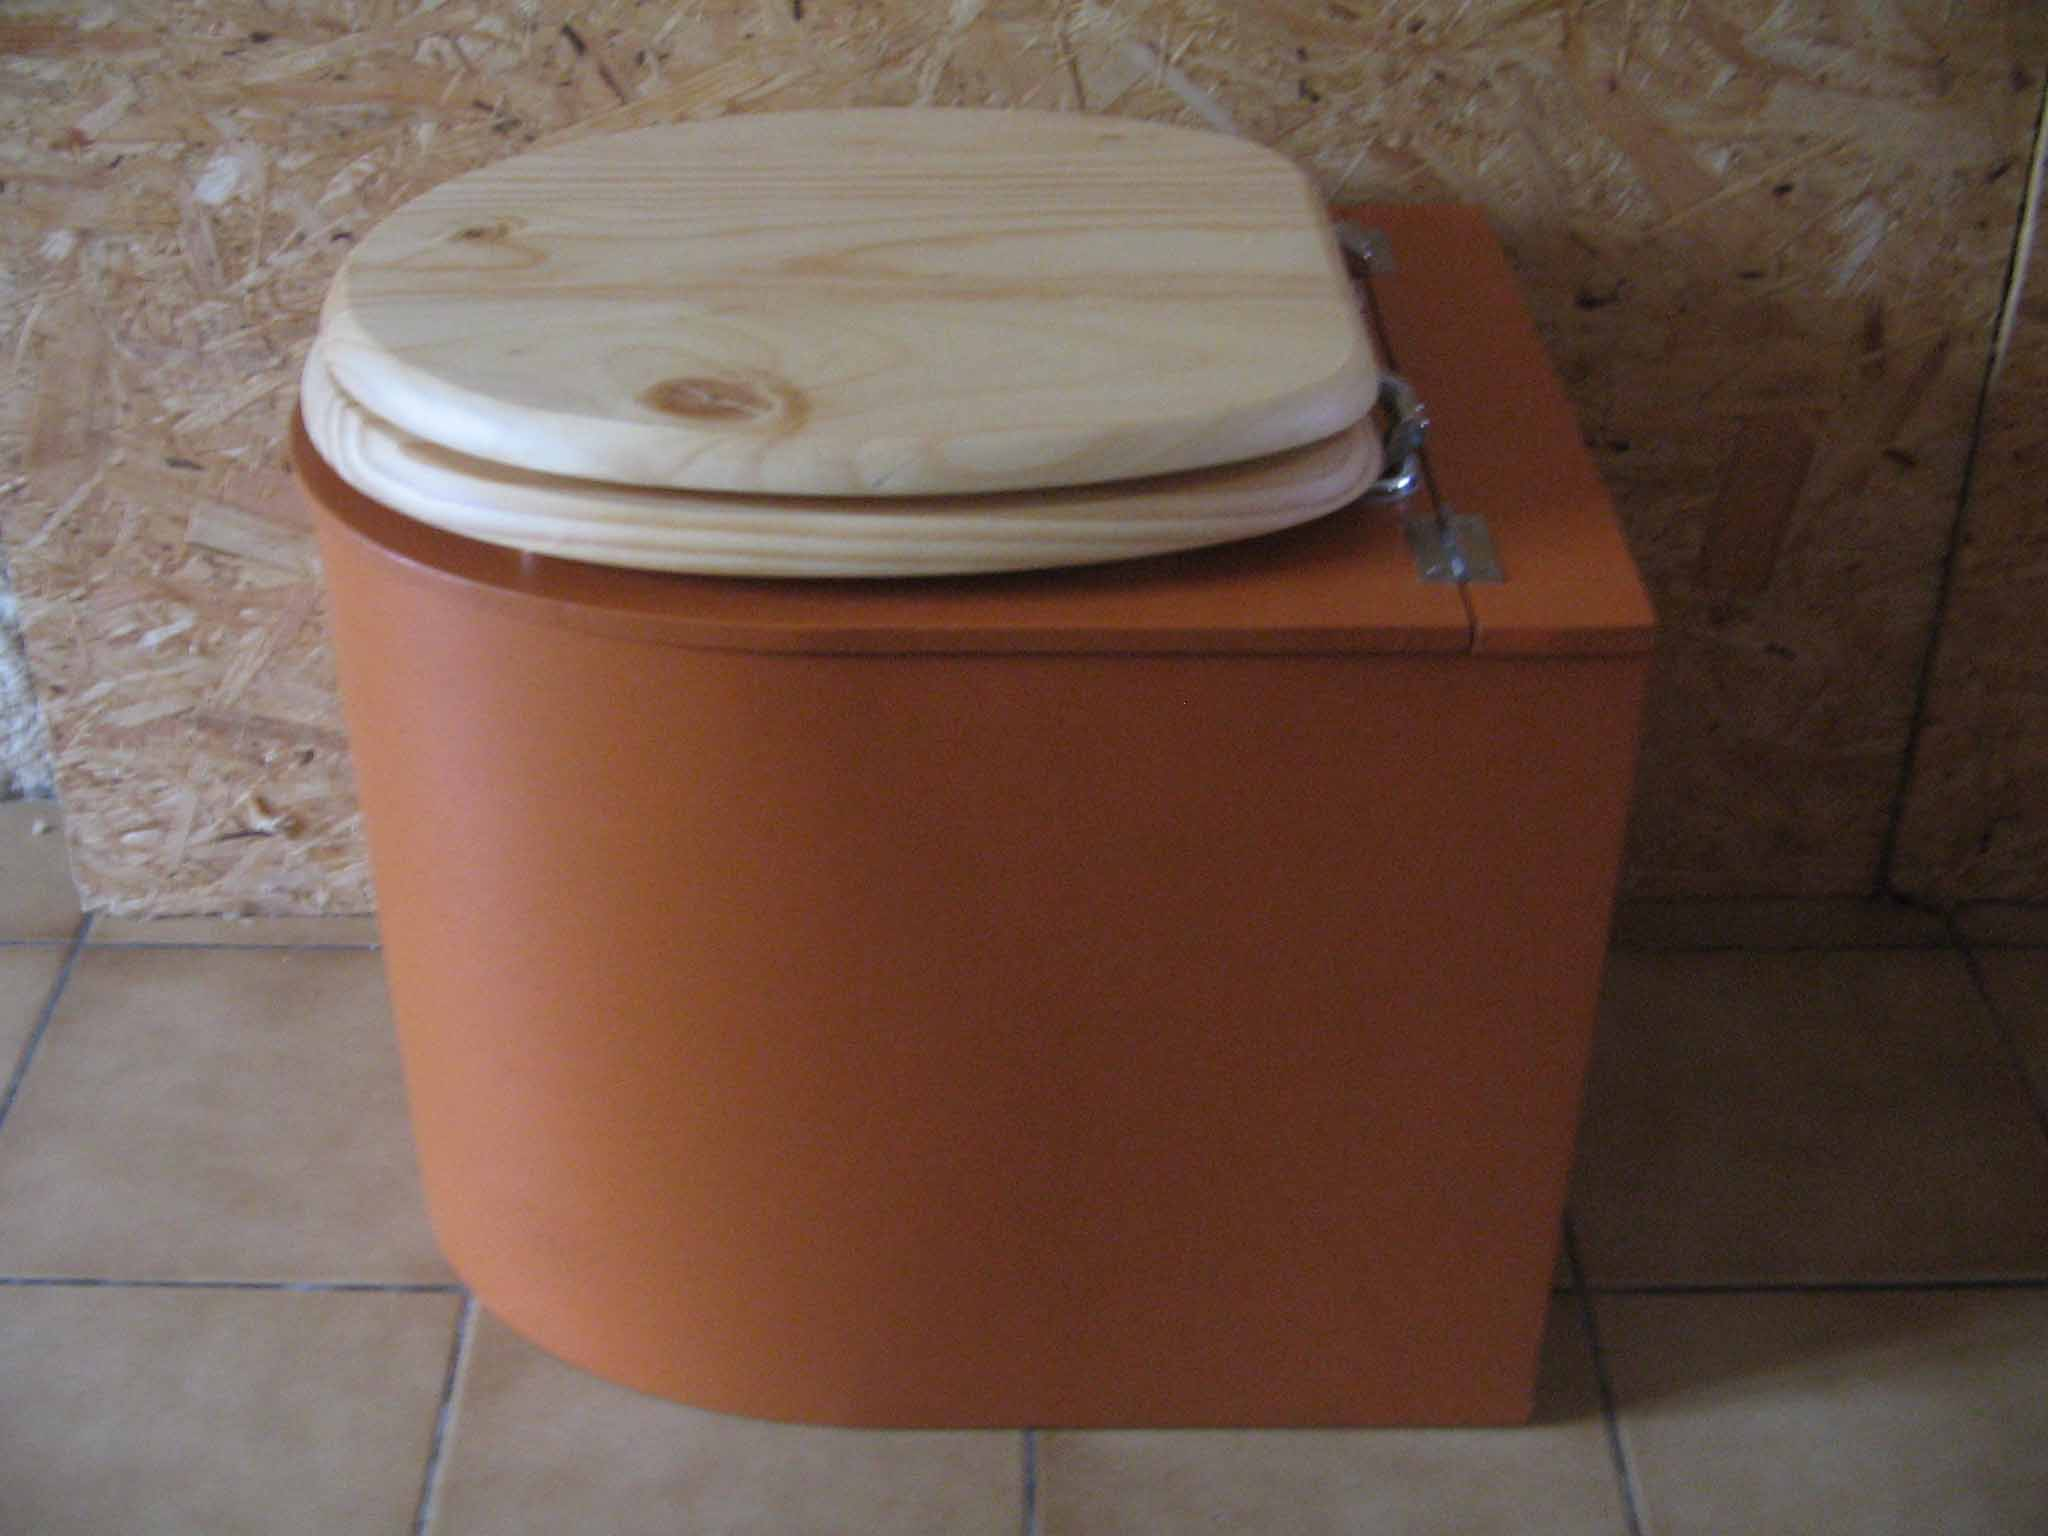 Toilette seche moderne orange